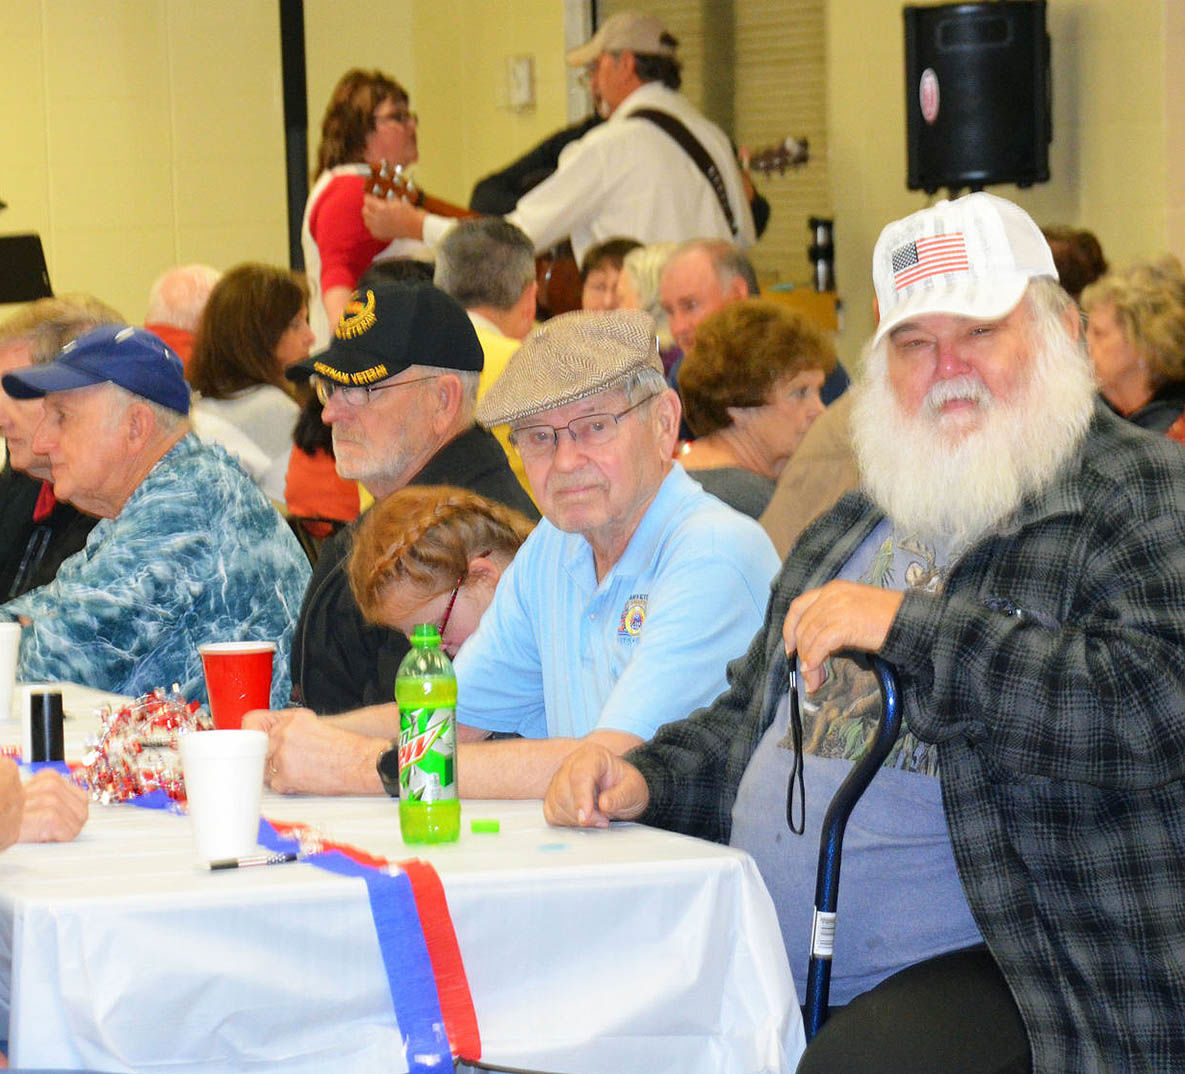 Vets Enjoy a Breakfast and Coffee Social on a Saturday Morning